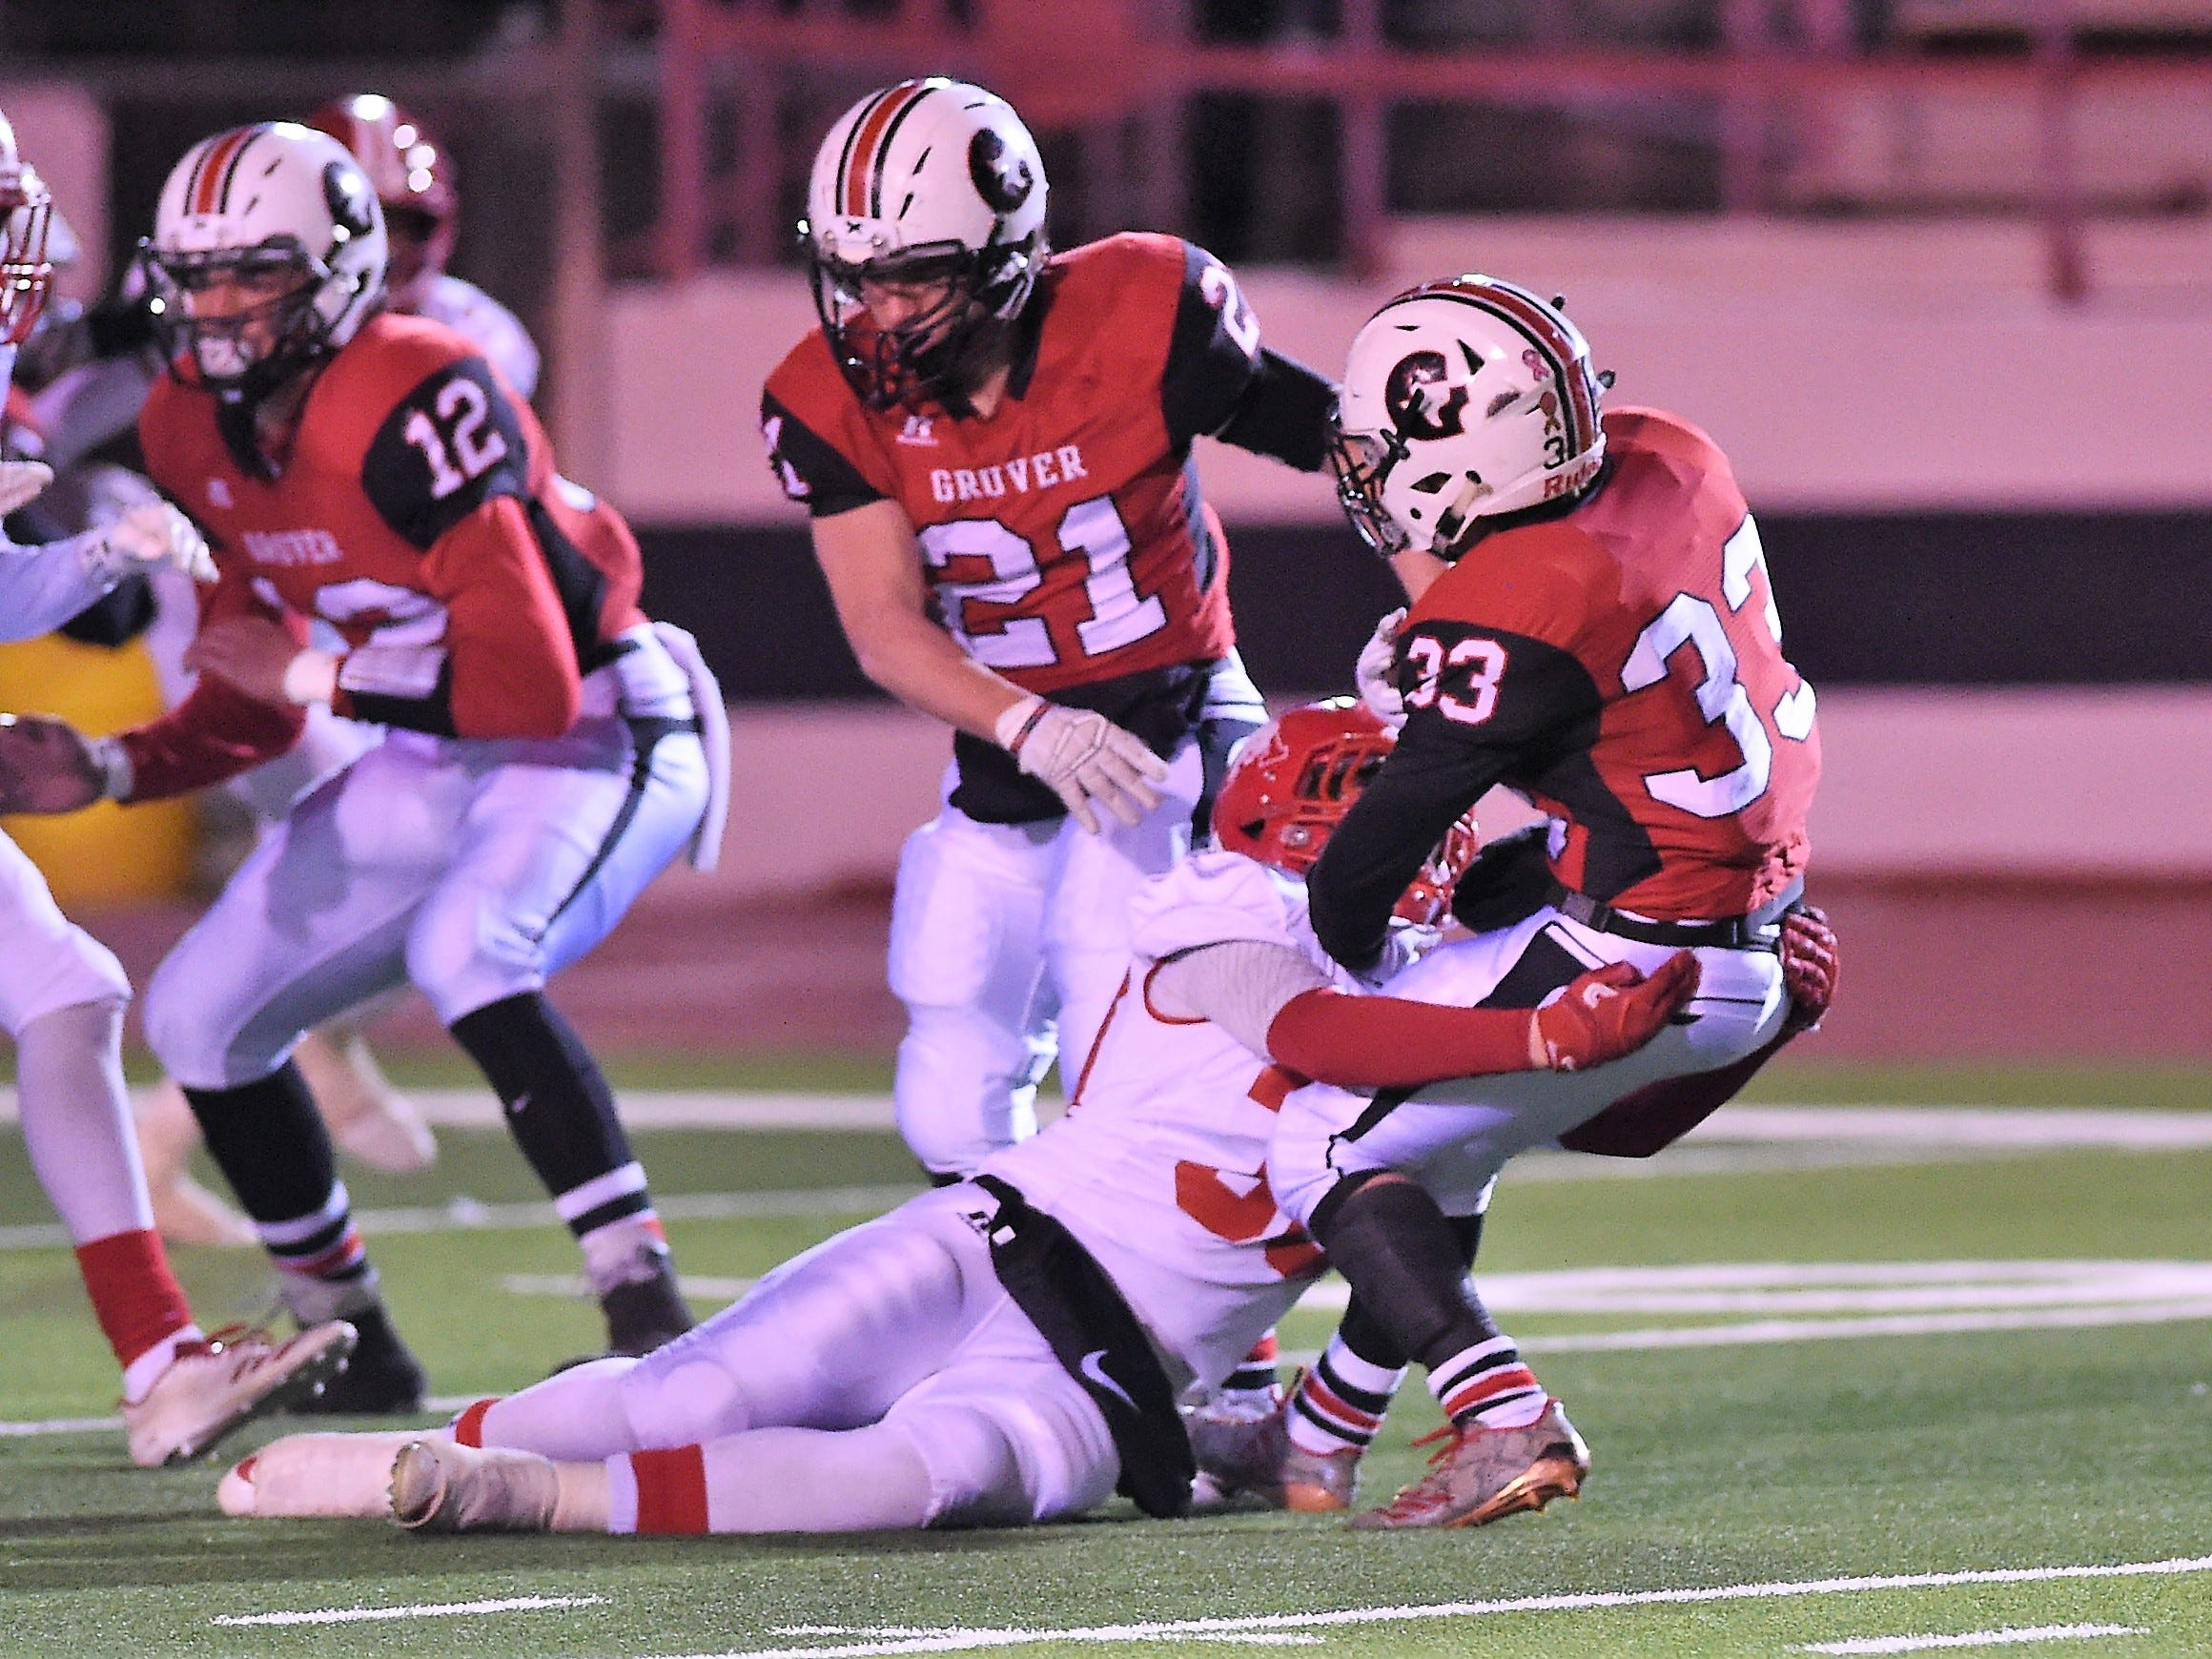 Albany's Brooks Neece (30) stands up Gruver's Brice McLaughlin (33) for a loss in the Class 2A Division II state semifinal at Sherwood Memorial Bulldog Stadium in Plainview on Thursday, Dec. 13, 2018.